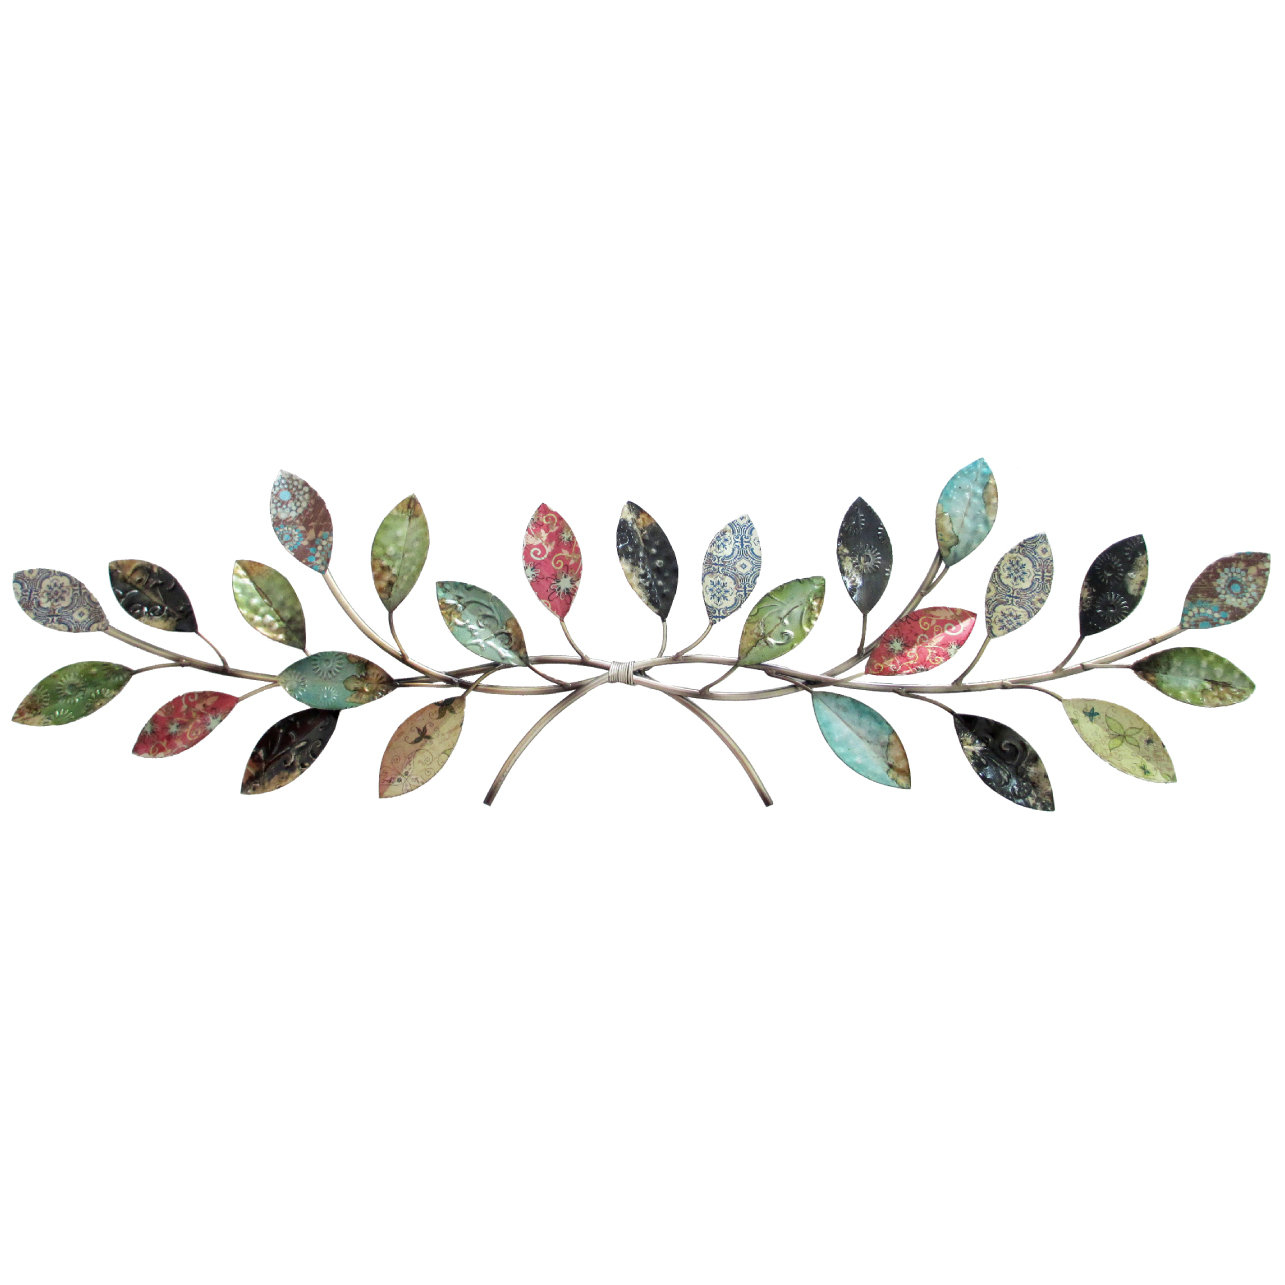 Leaves Metal Sculpture Wall Décor Throughout Leaves Metal Sculpture Wall Decor (View 2 of 30)